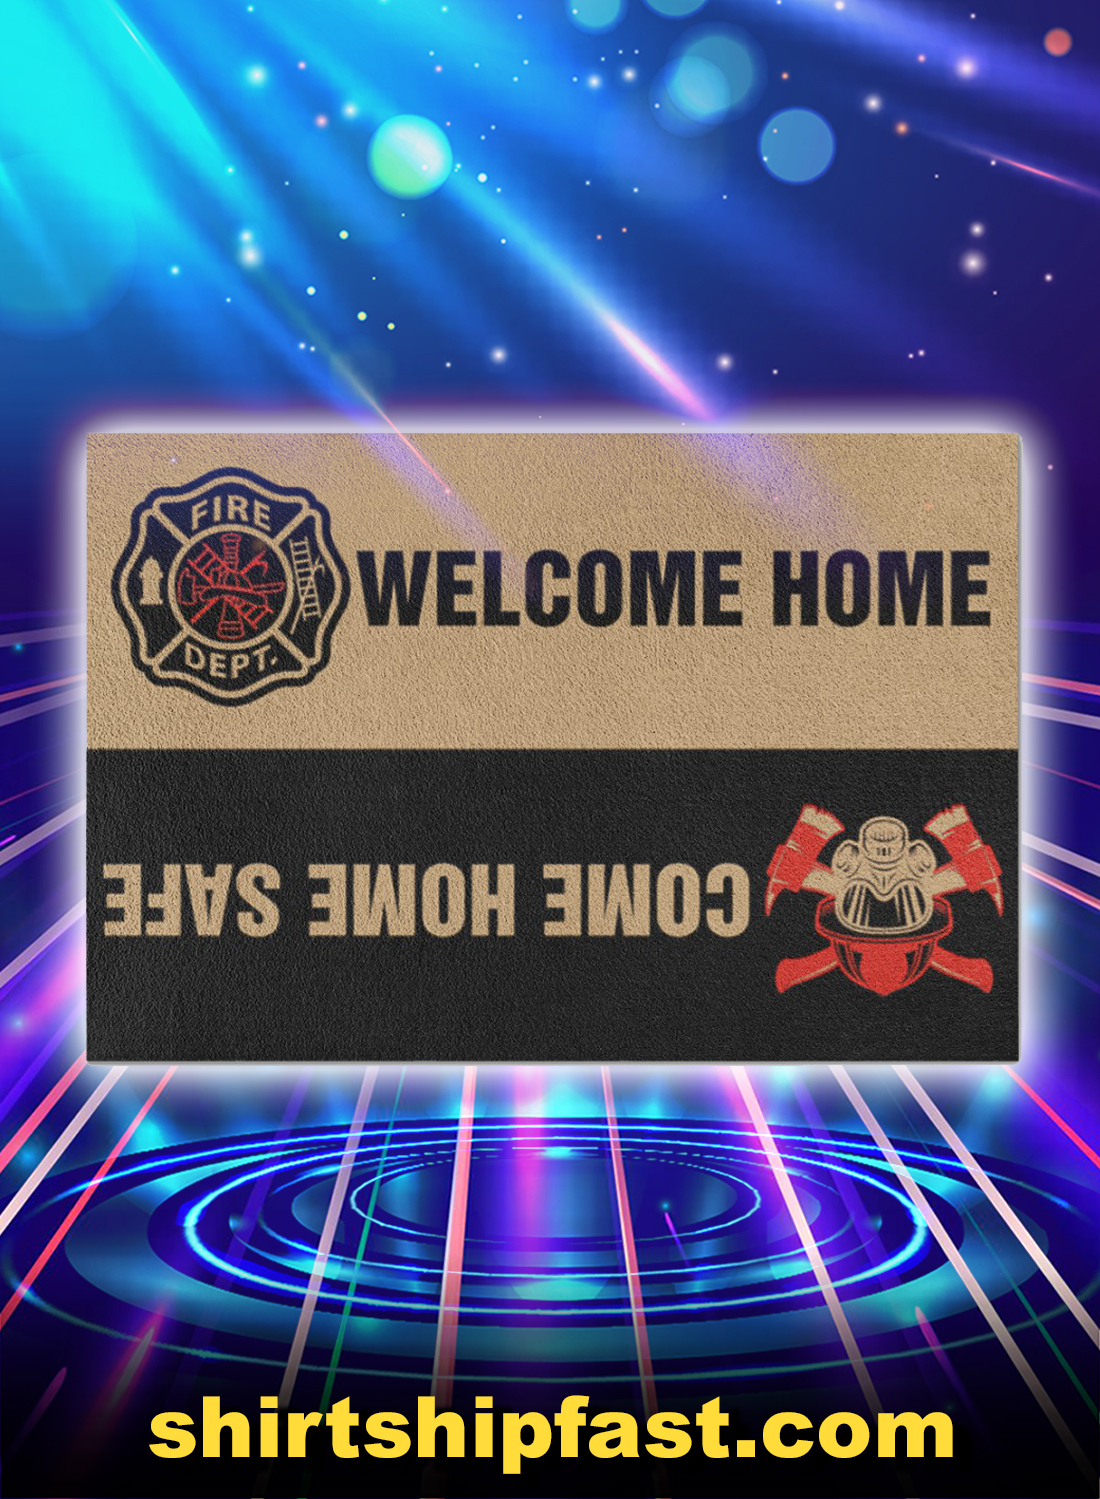 Firefighter welcome home come home safe doormat - Picture 1